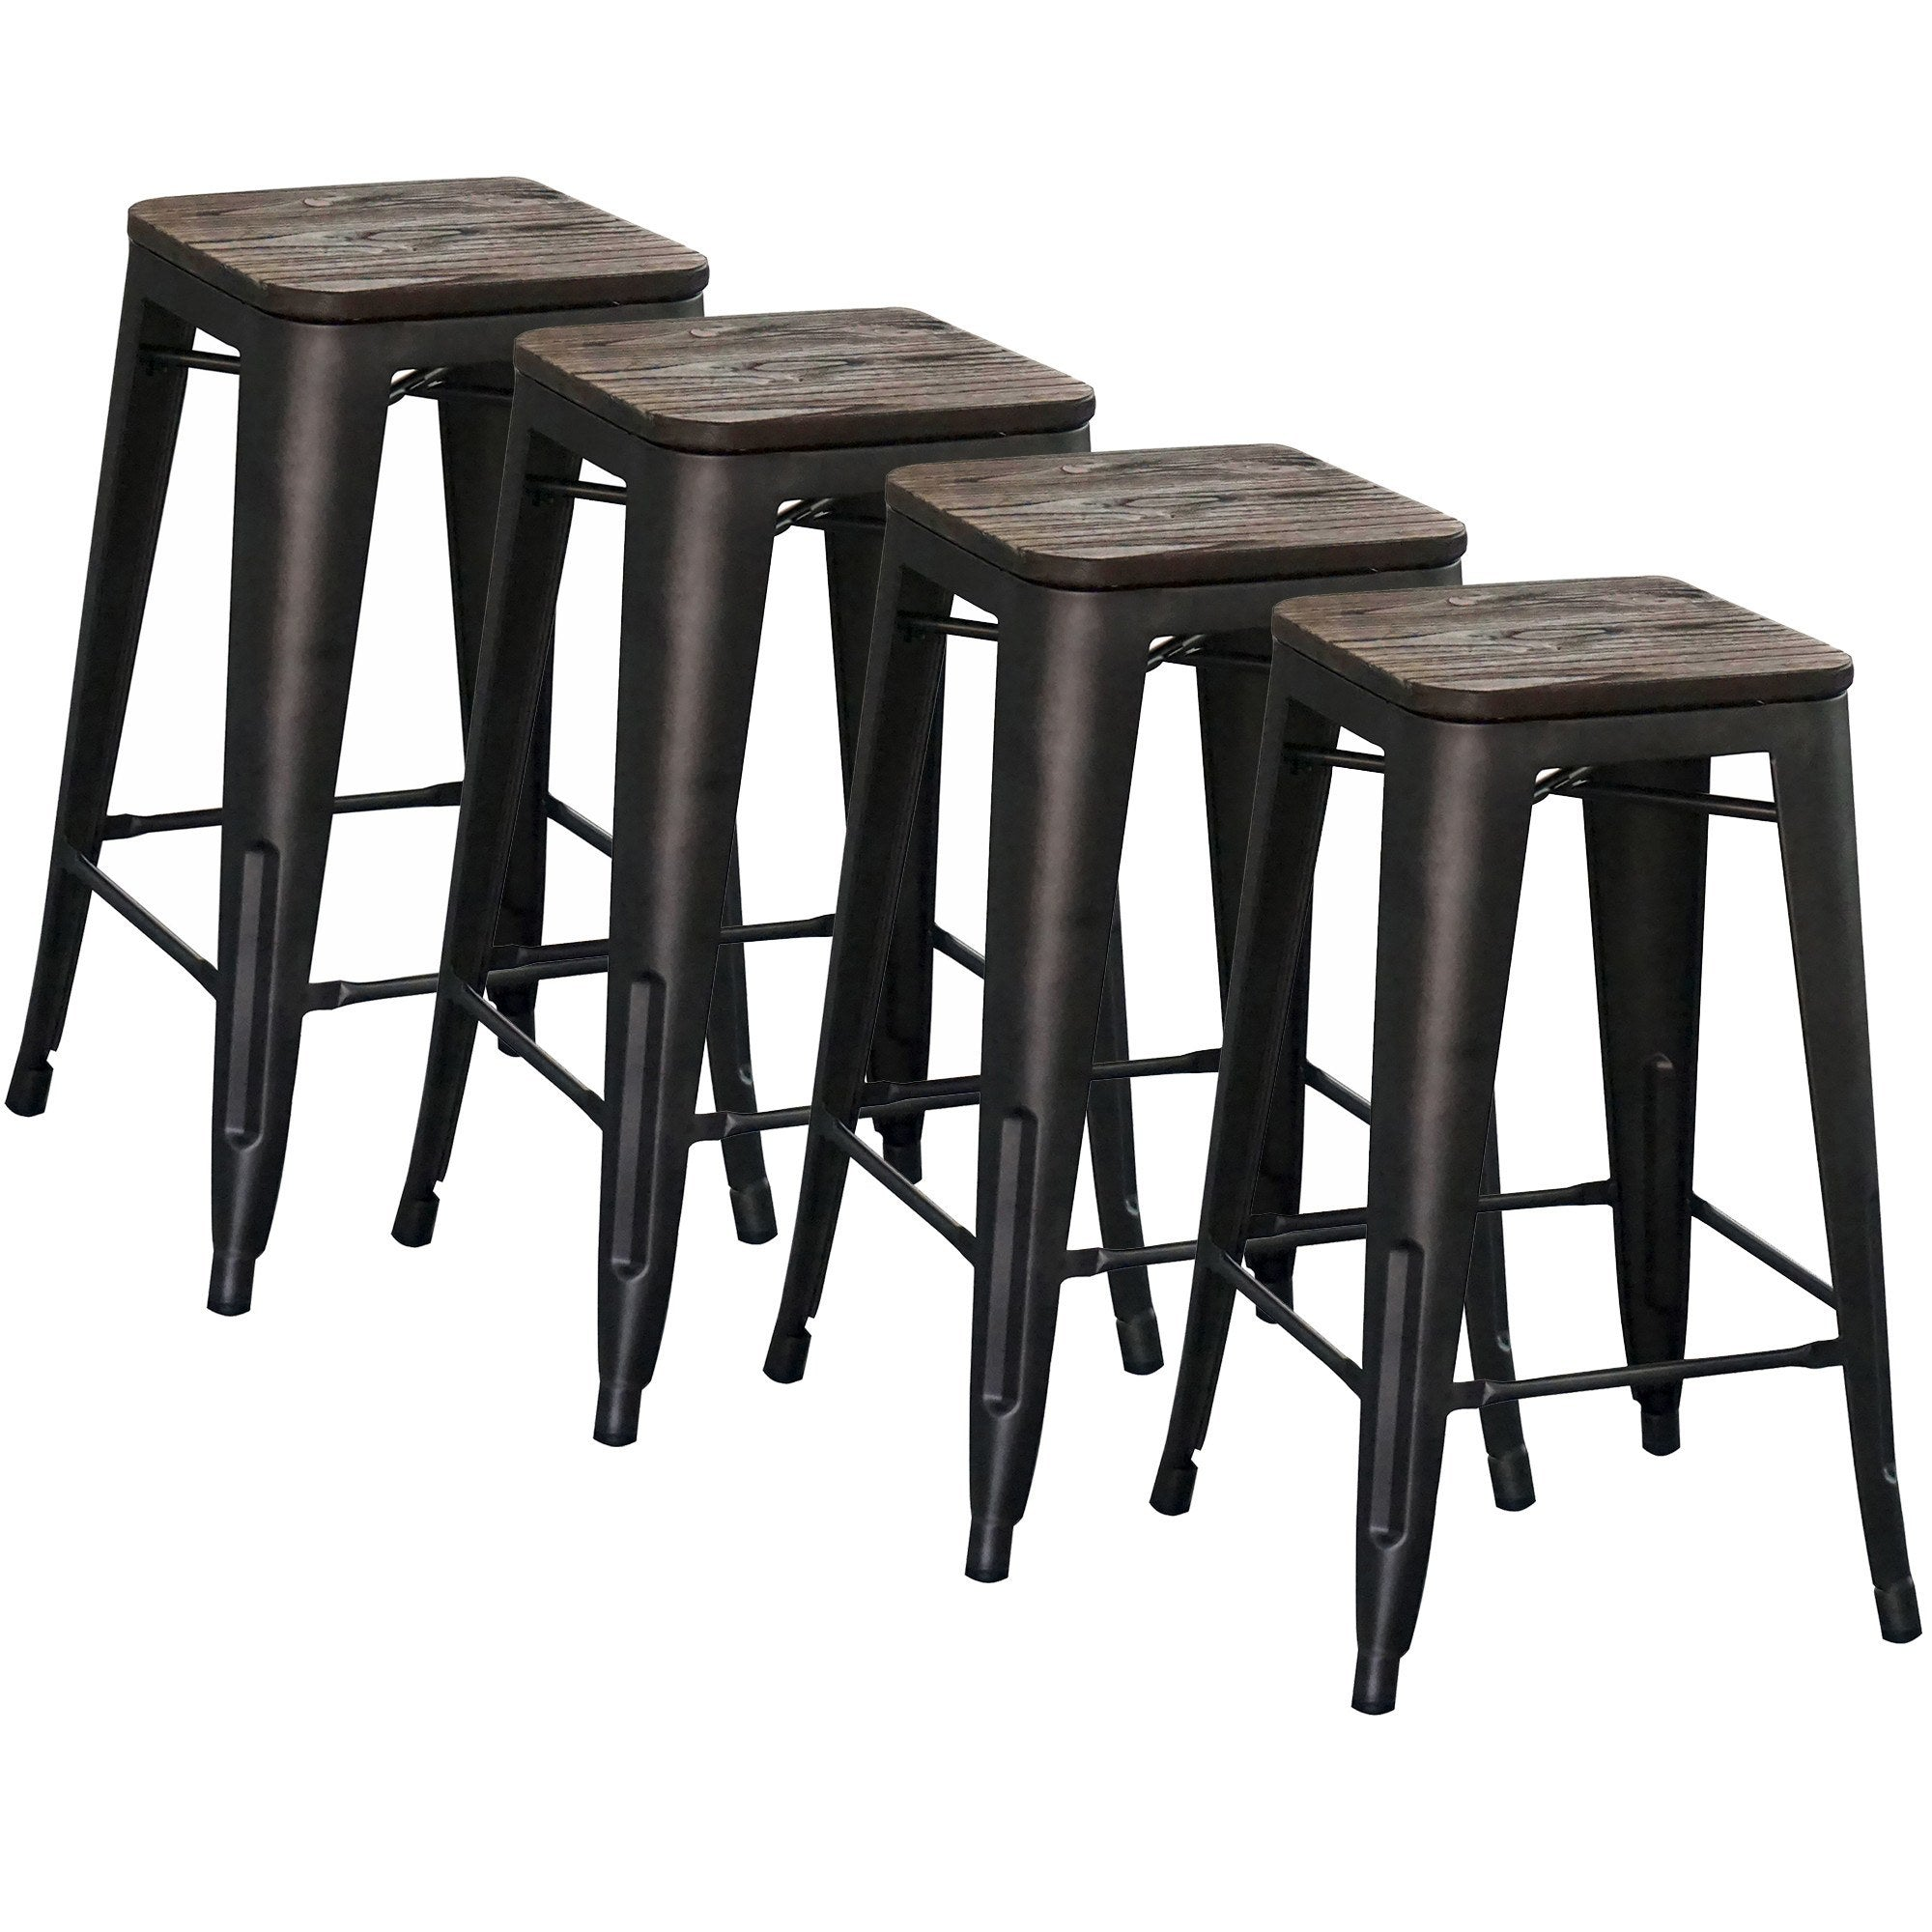 Nspire Modus Counter Stool Set Of 4 Bar Stool Boutique